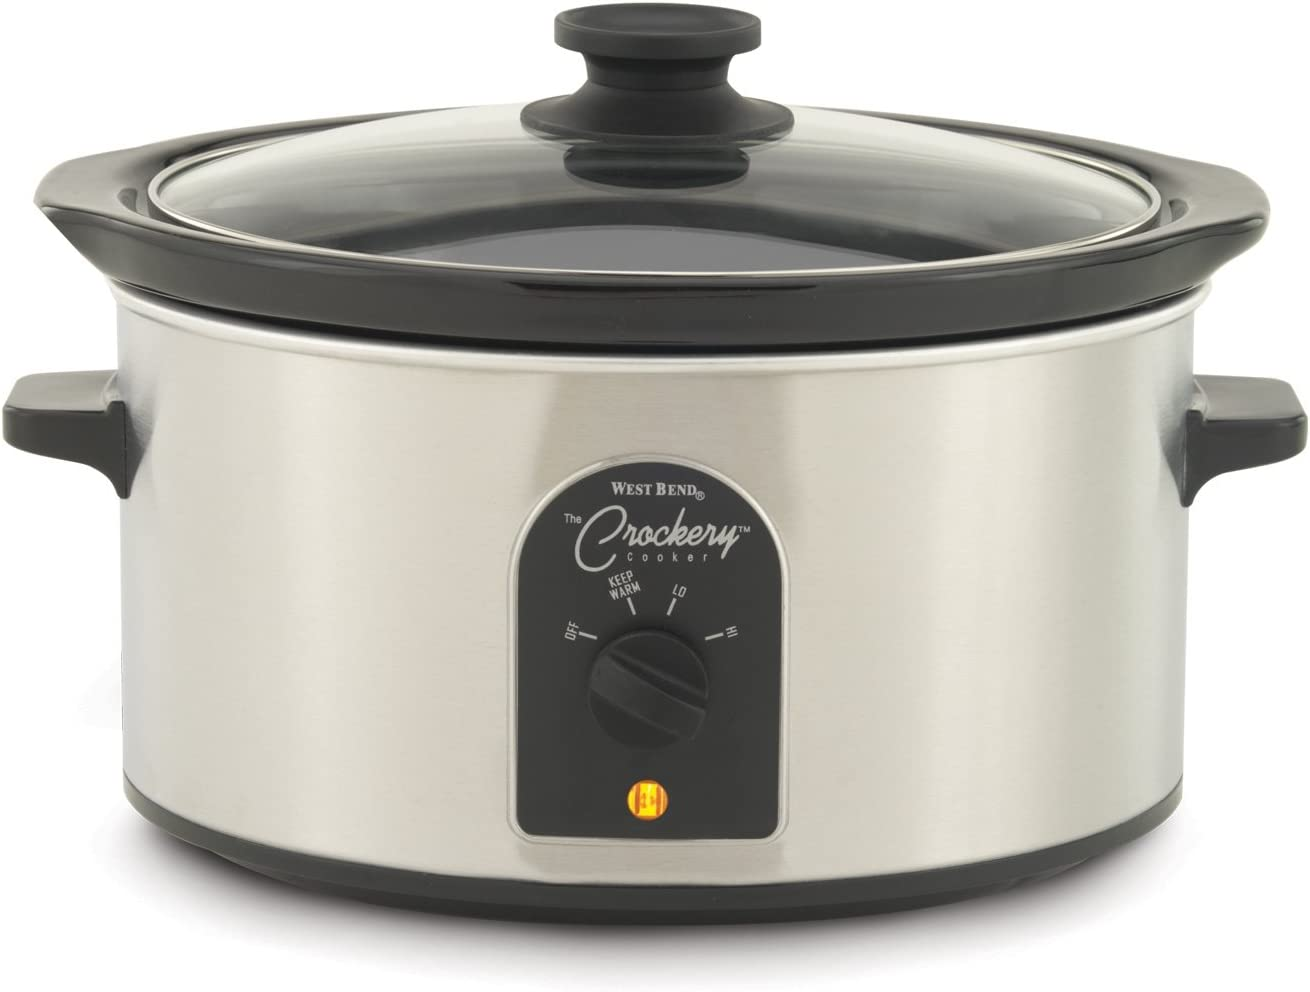 West Bend 84384 4-Quart Oval-Shaped Crockery Cooker (Discontinued by Manufacturer)